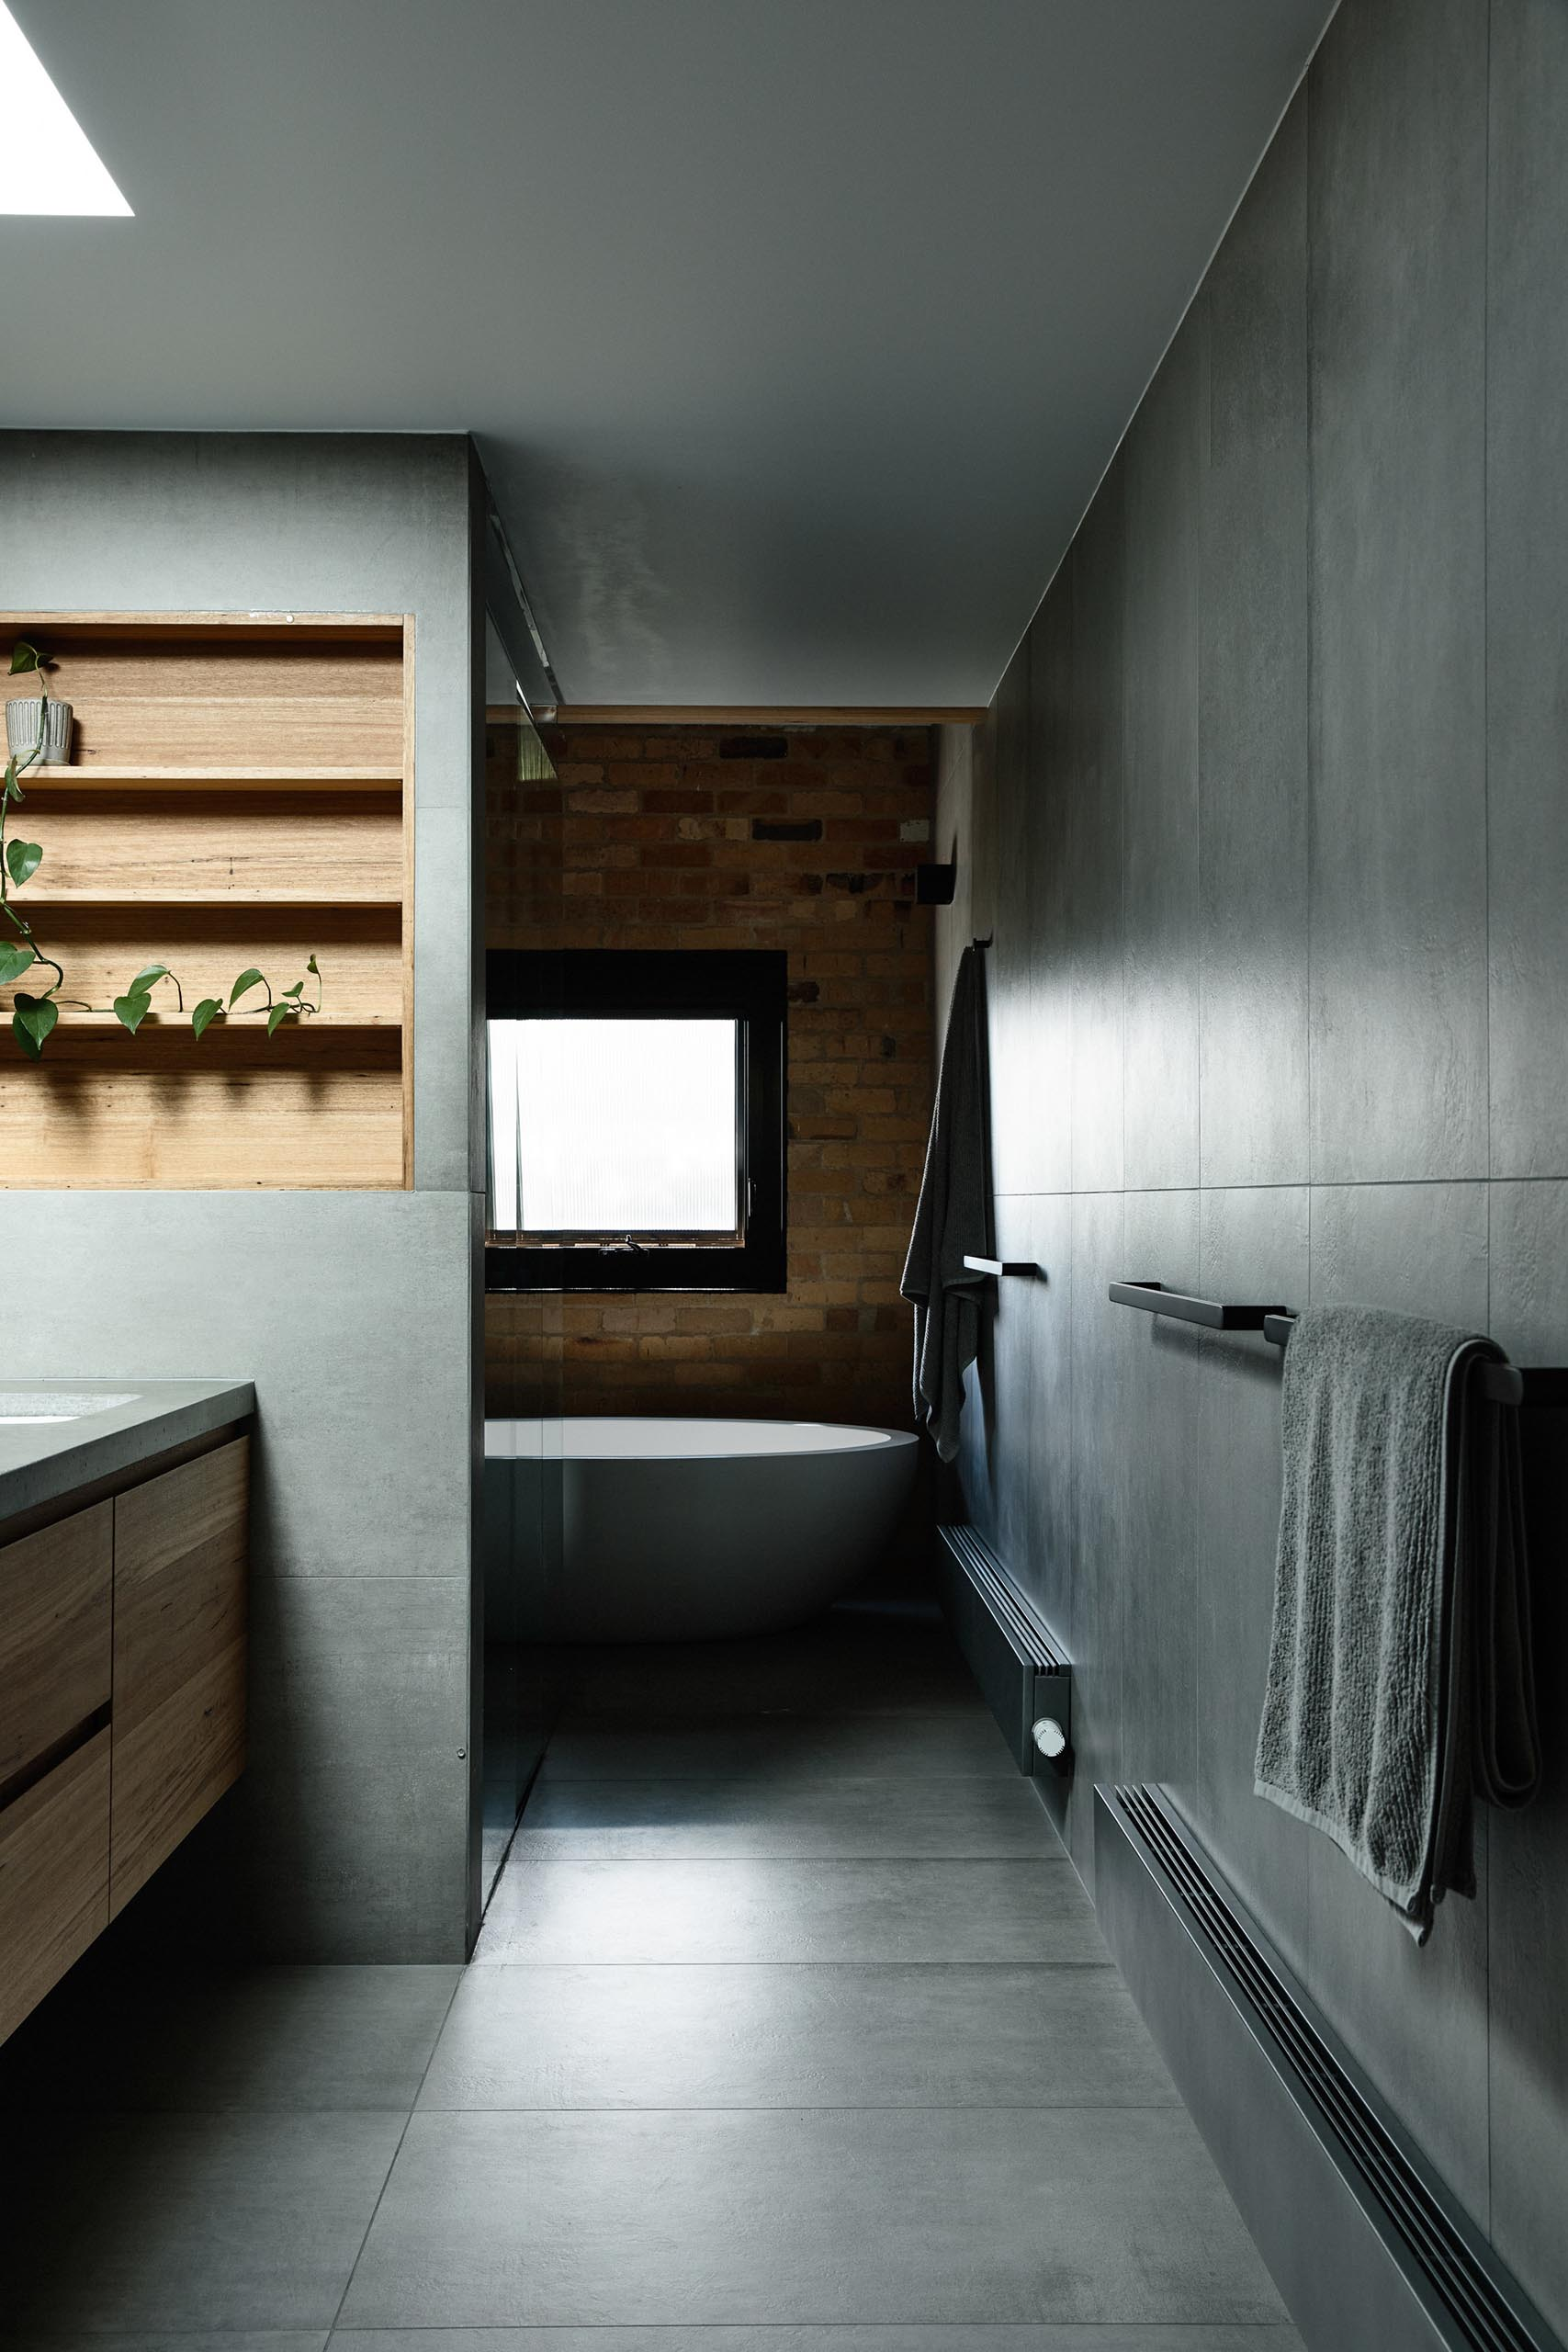 In this modern bathroom, gray walls and floors are accented by a wood-lined shelving niche, small metallic tiles, and a white freestanding bathtub.